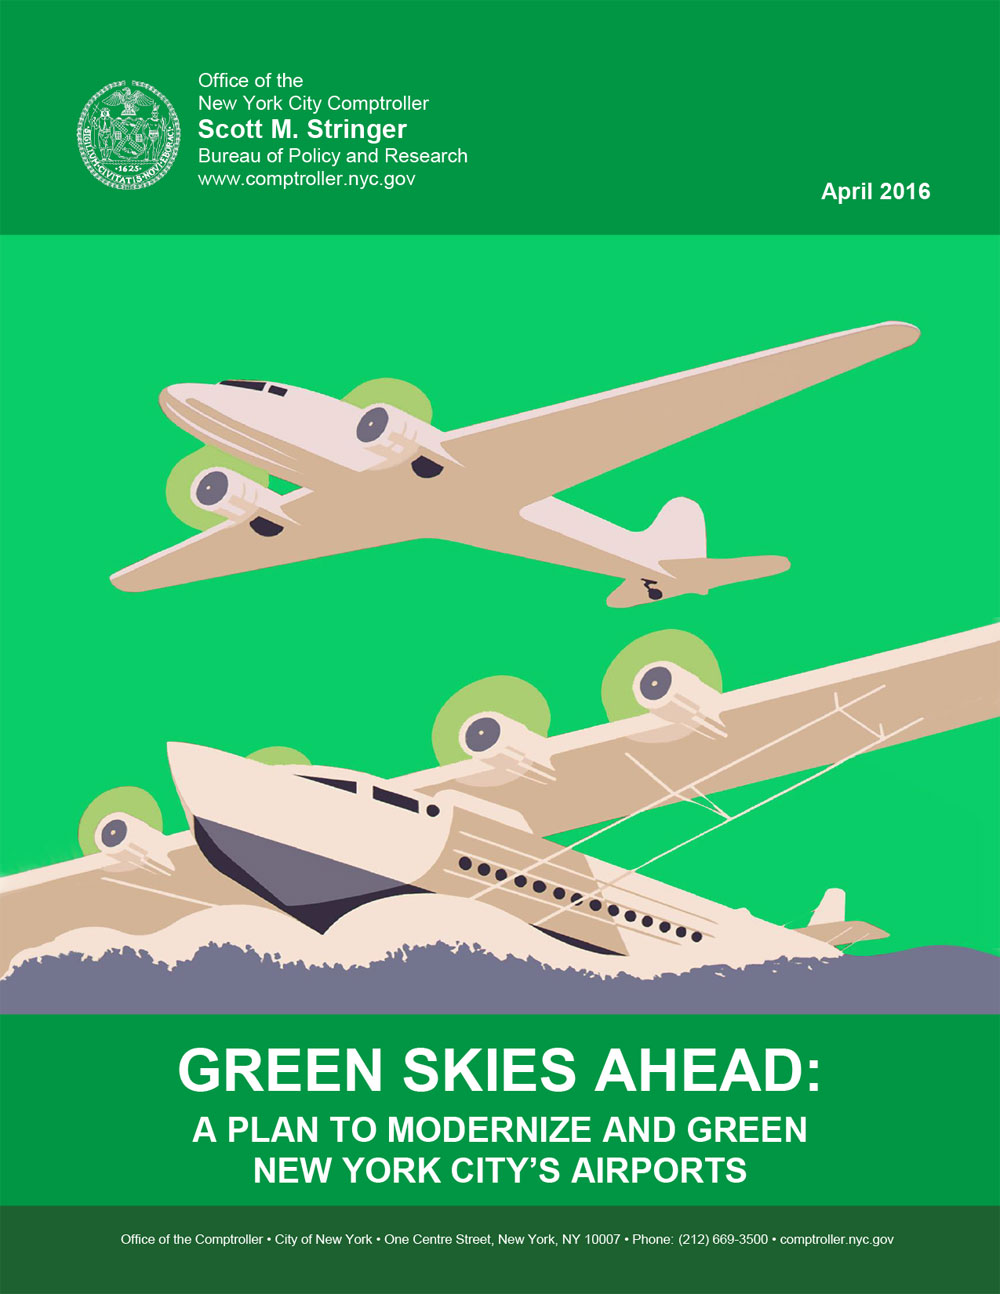 green skies ahead a plan to modernize and green new york city s